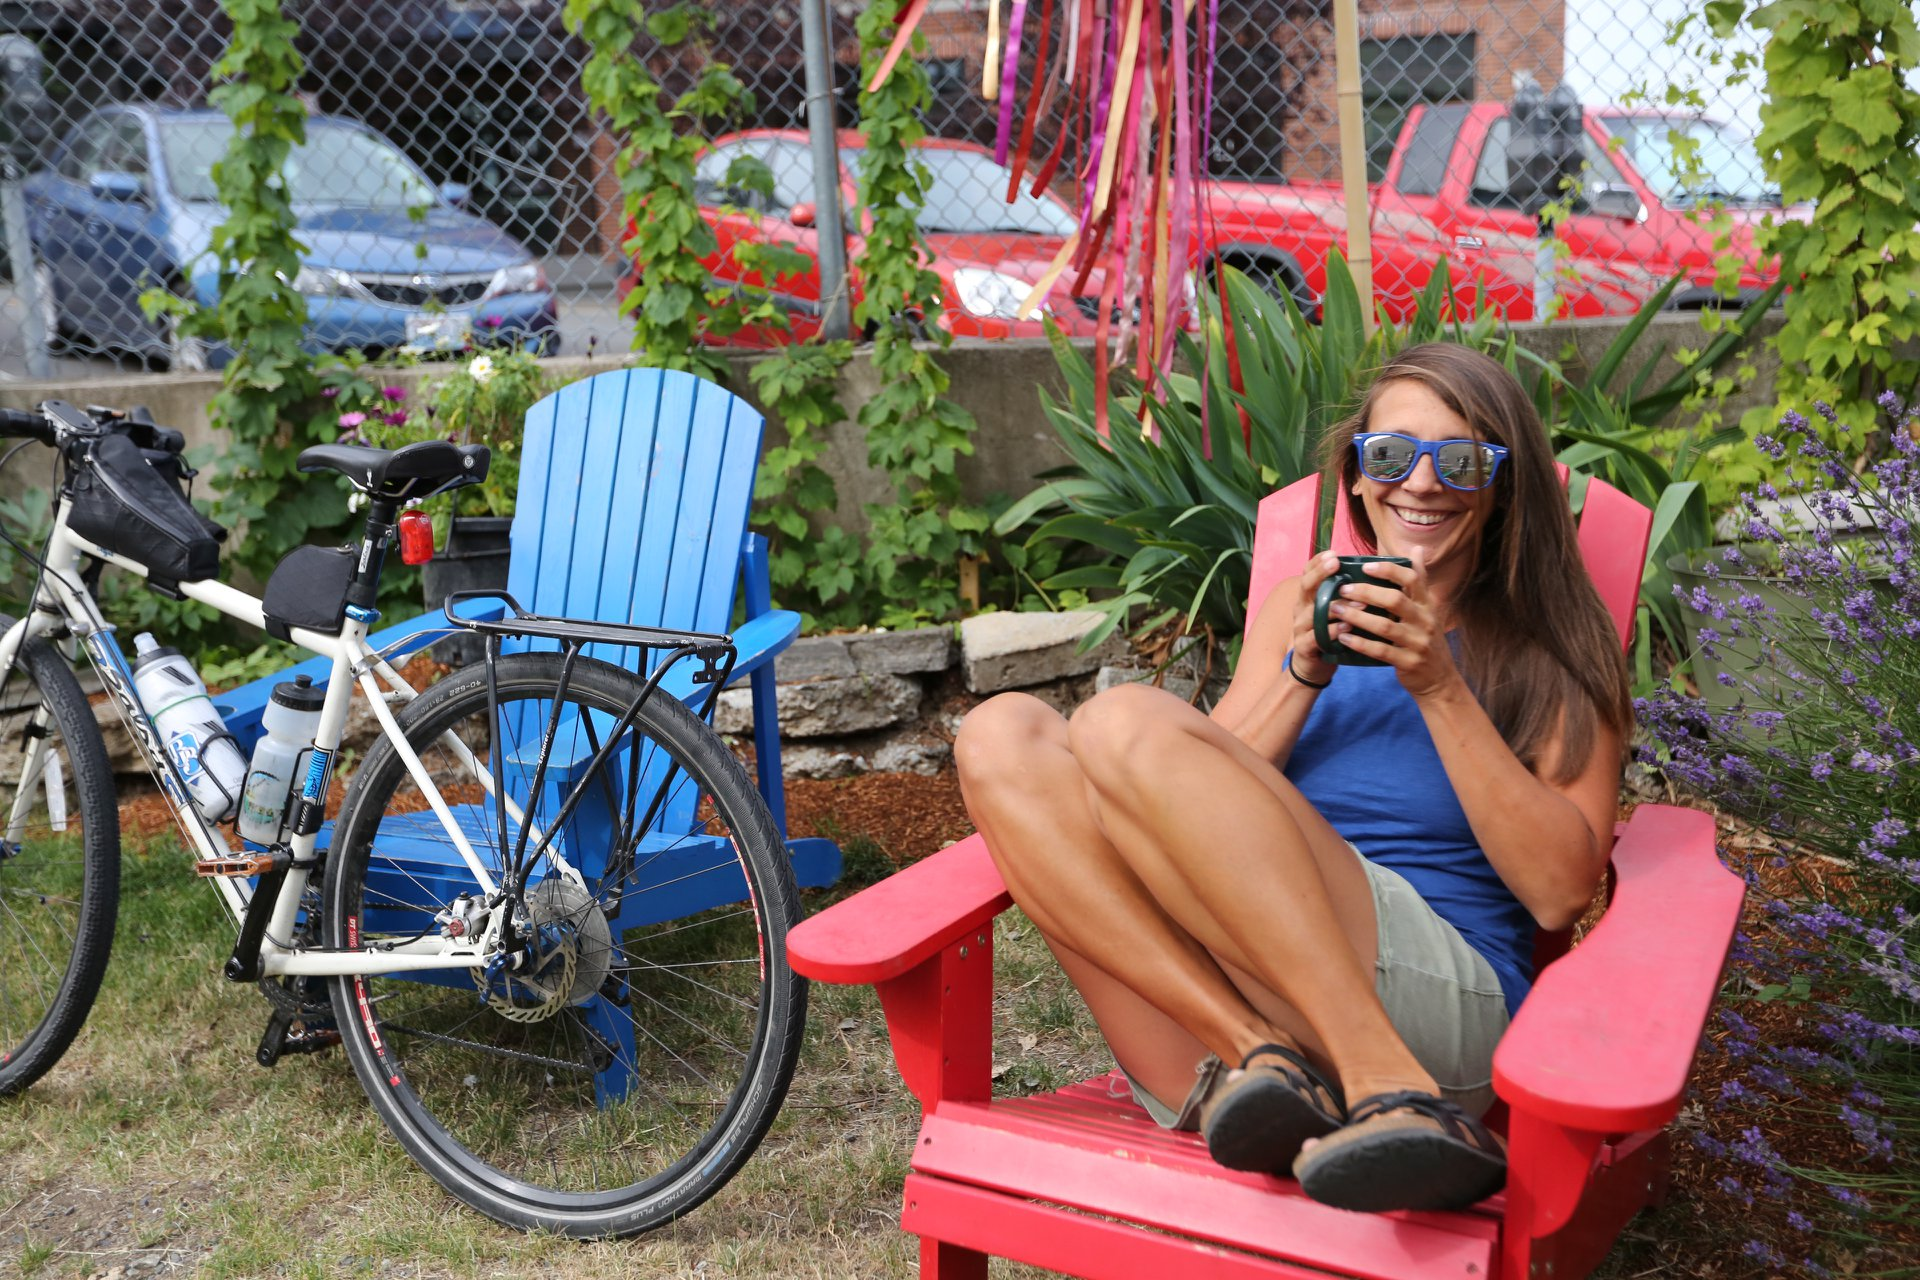 You can often find Jenny on her bike or enjoying her favorite beverage (coffee) somewhere outdoors, preferably in the sunshine.